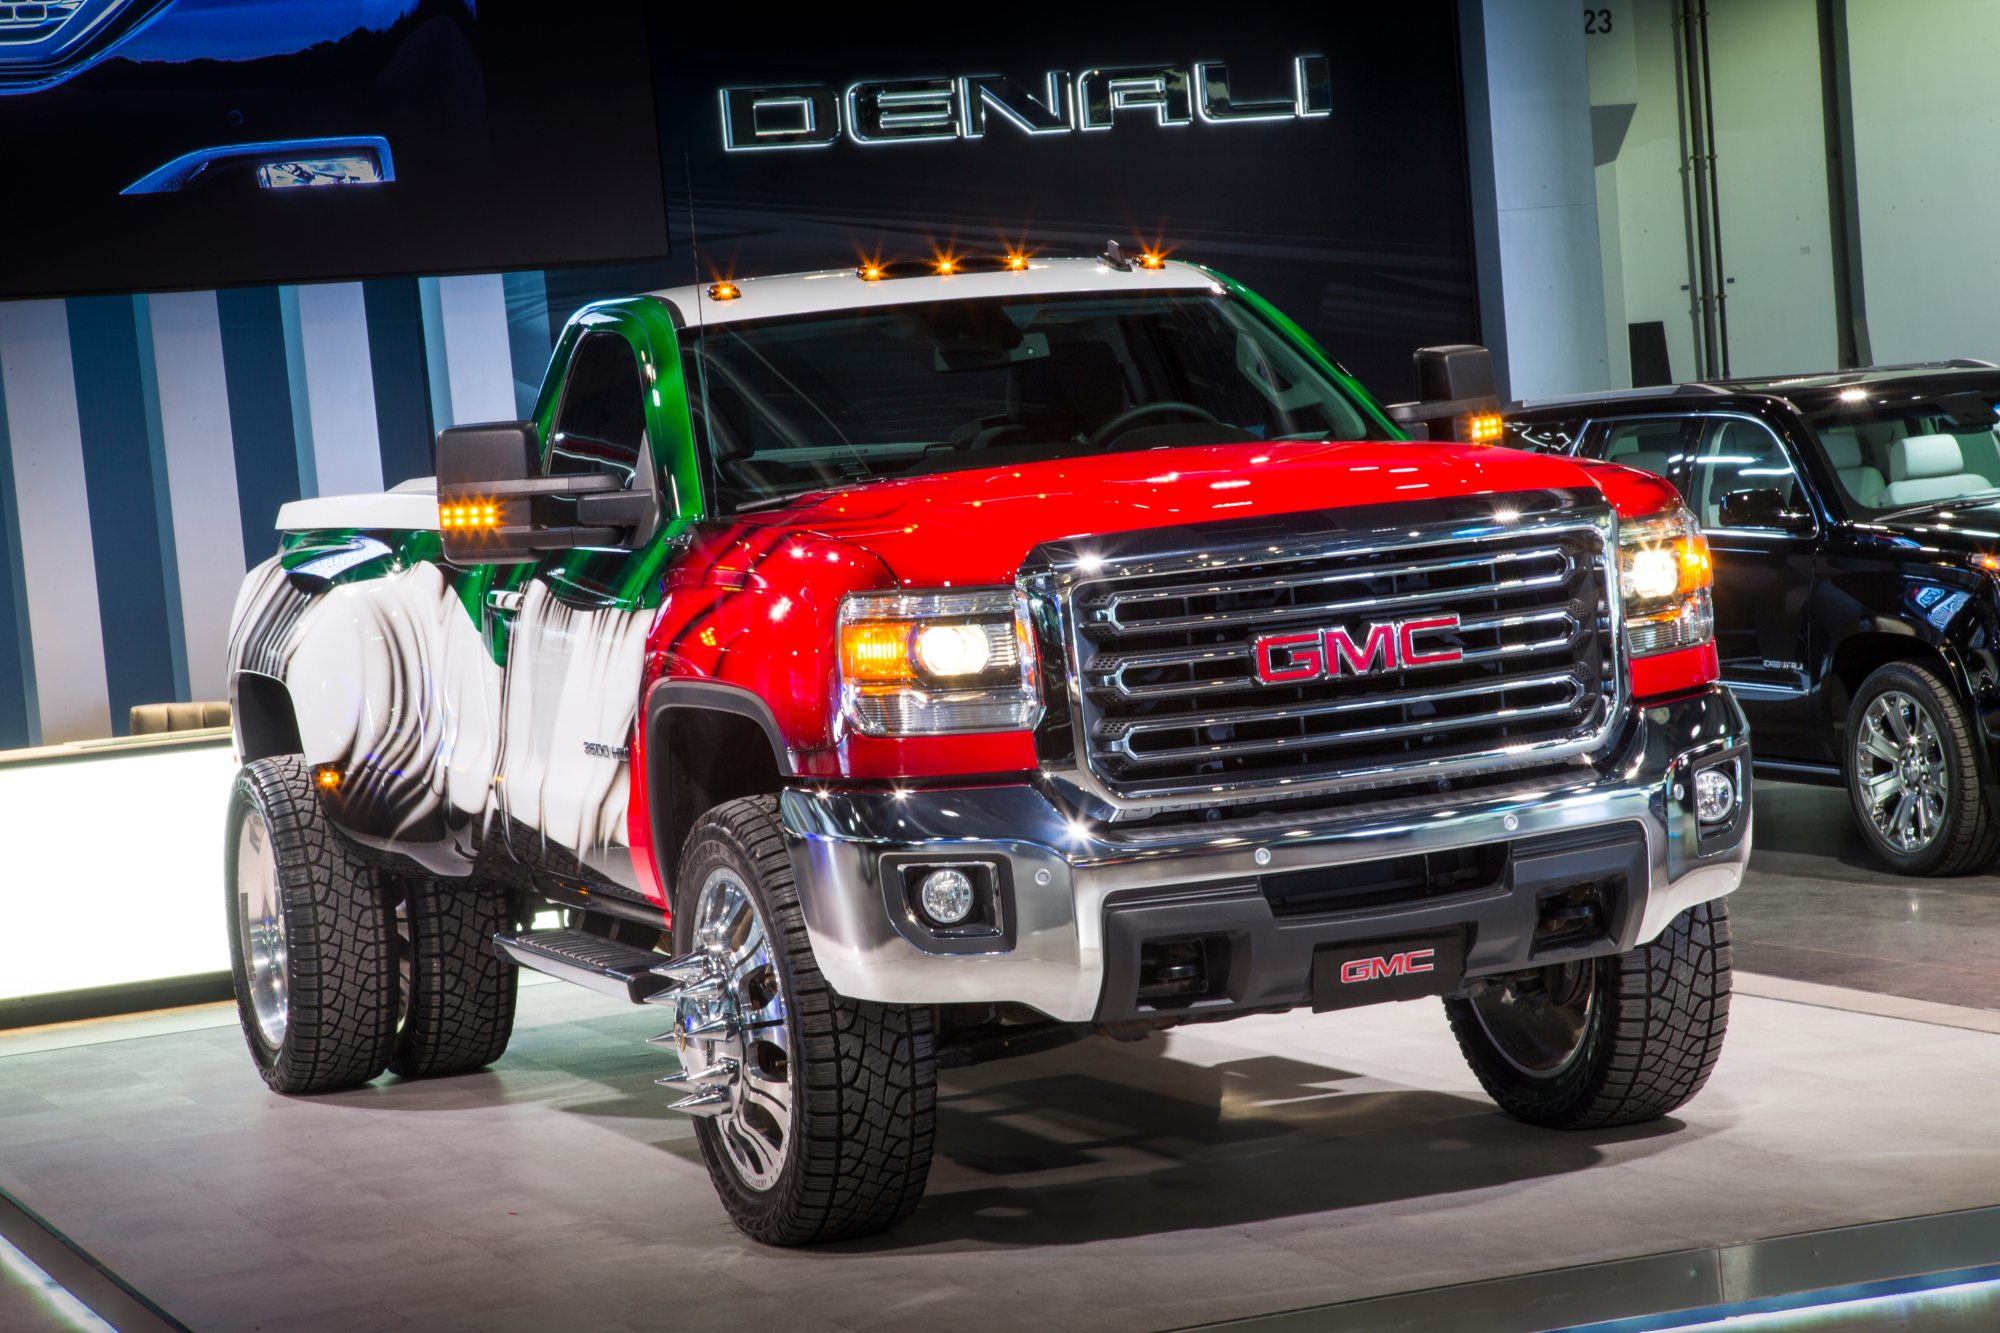 hight resolution of take a virtual tour of the gmc stand at the dubai international motor show 2015